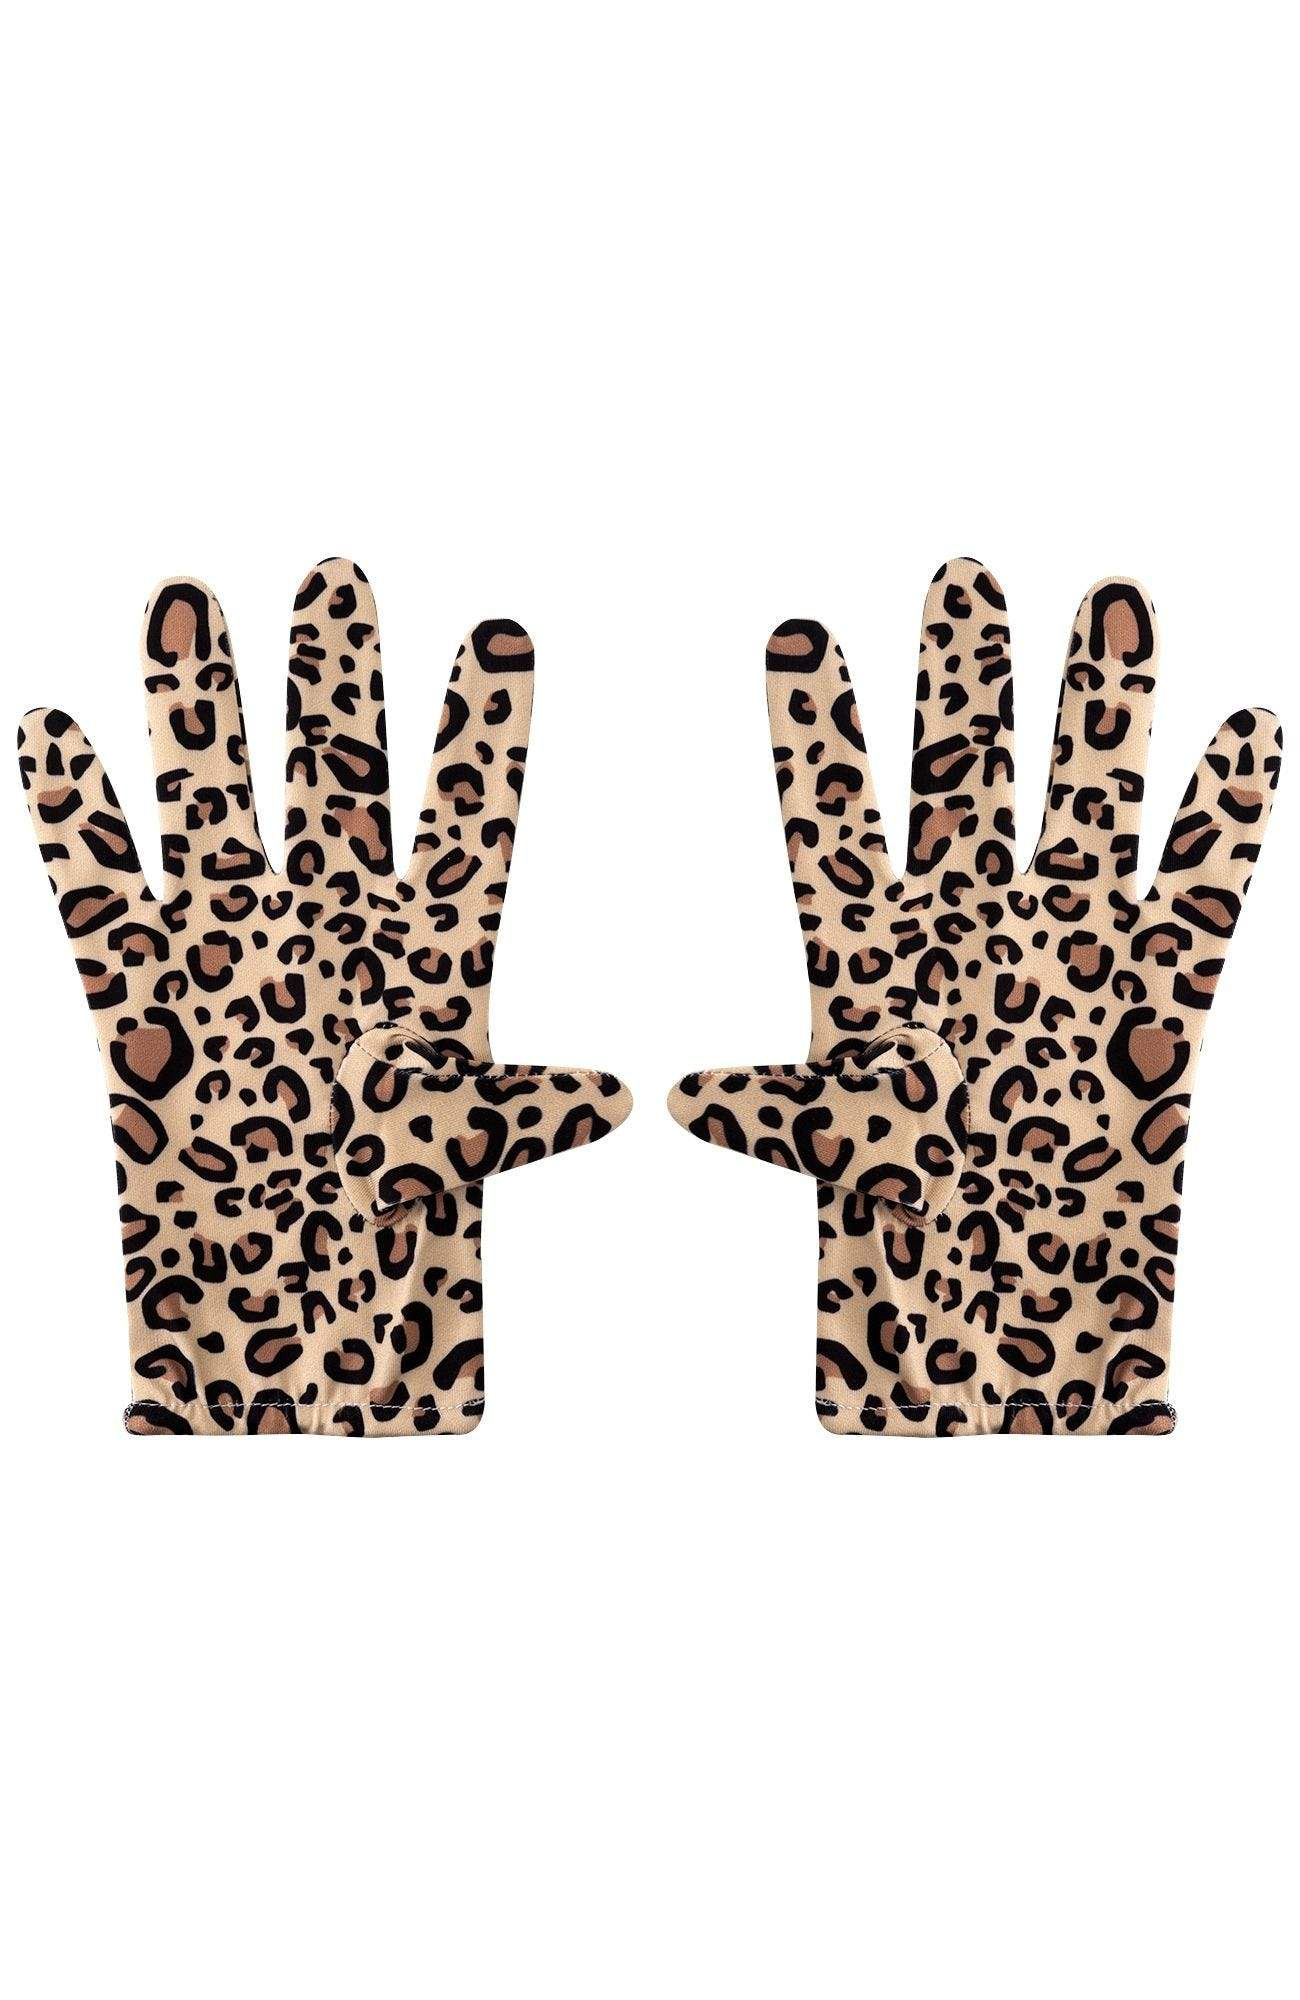 COUGAR GLOVES - Molly's! A Chic and Unique Boutique